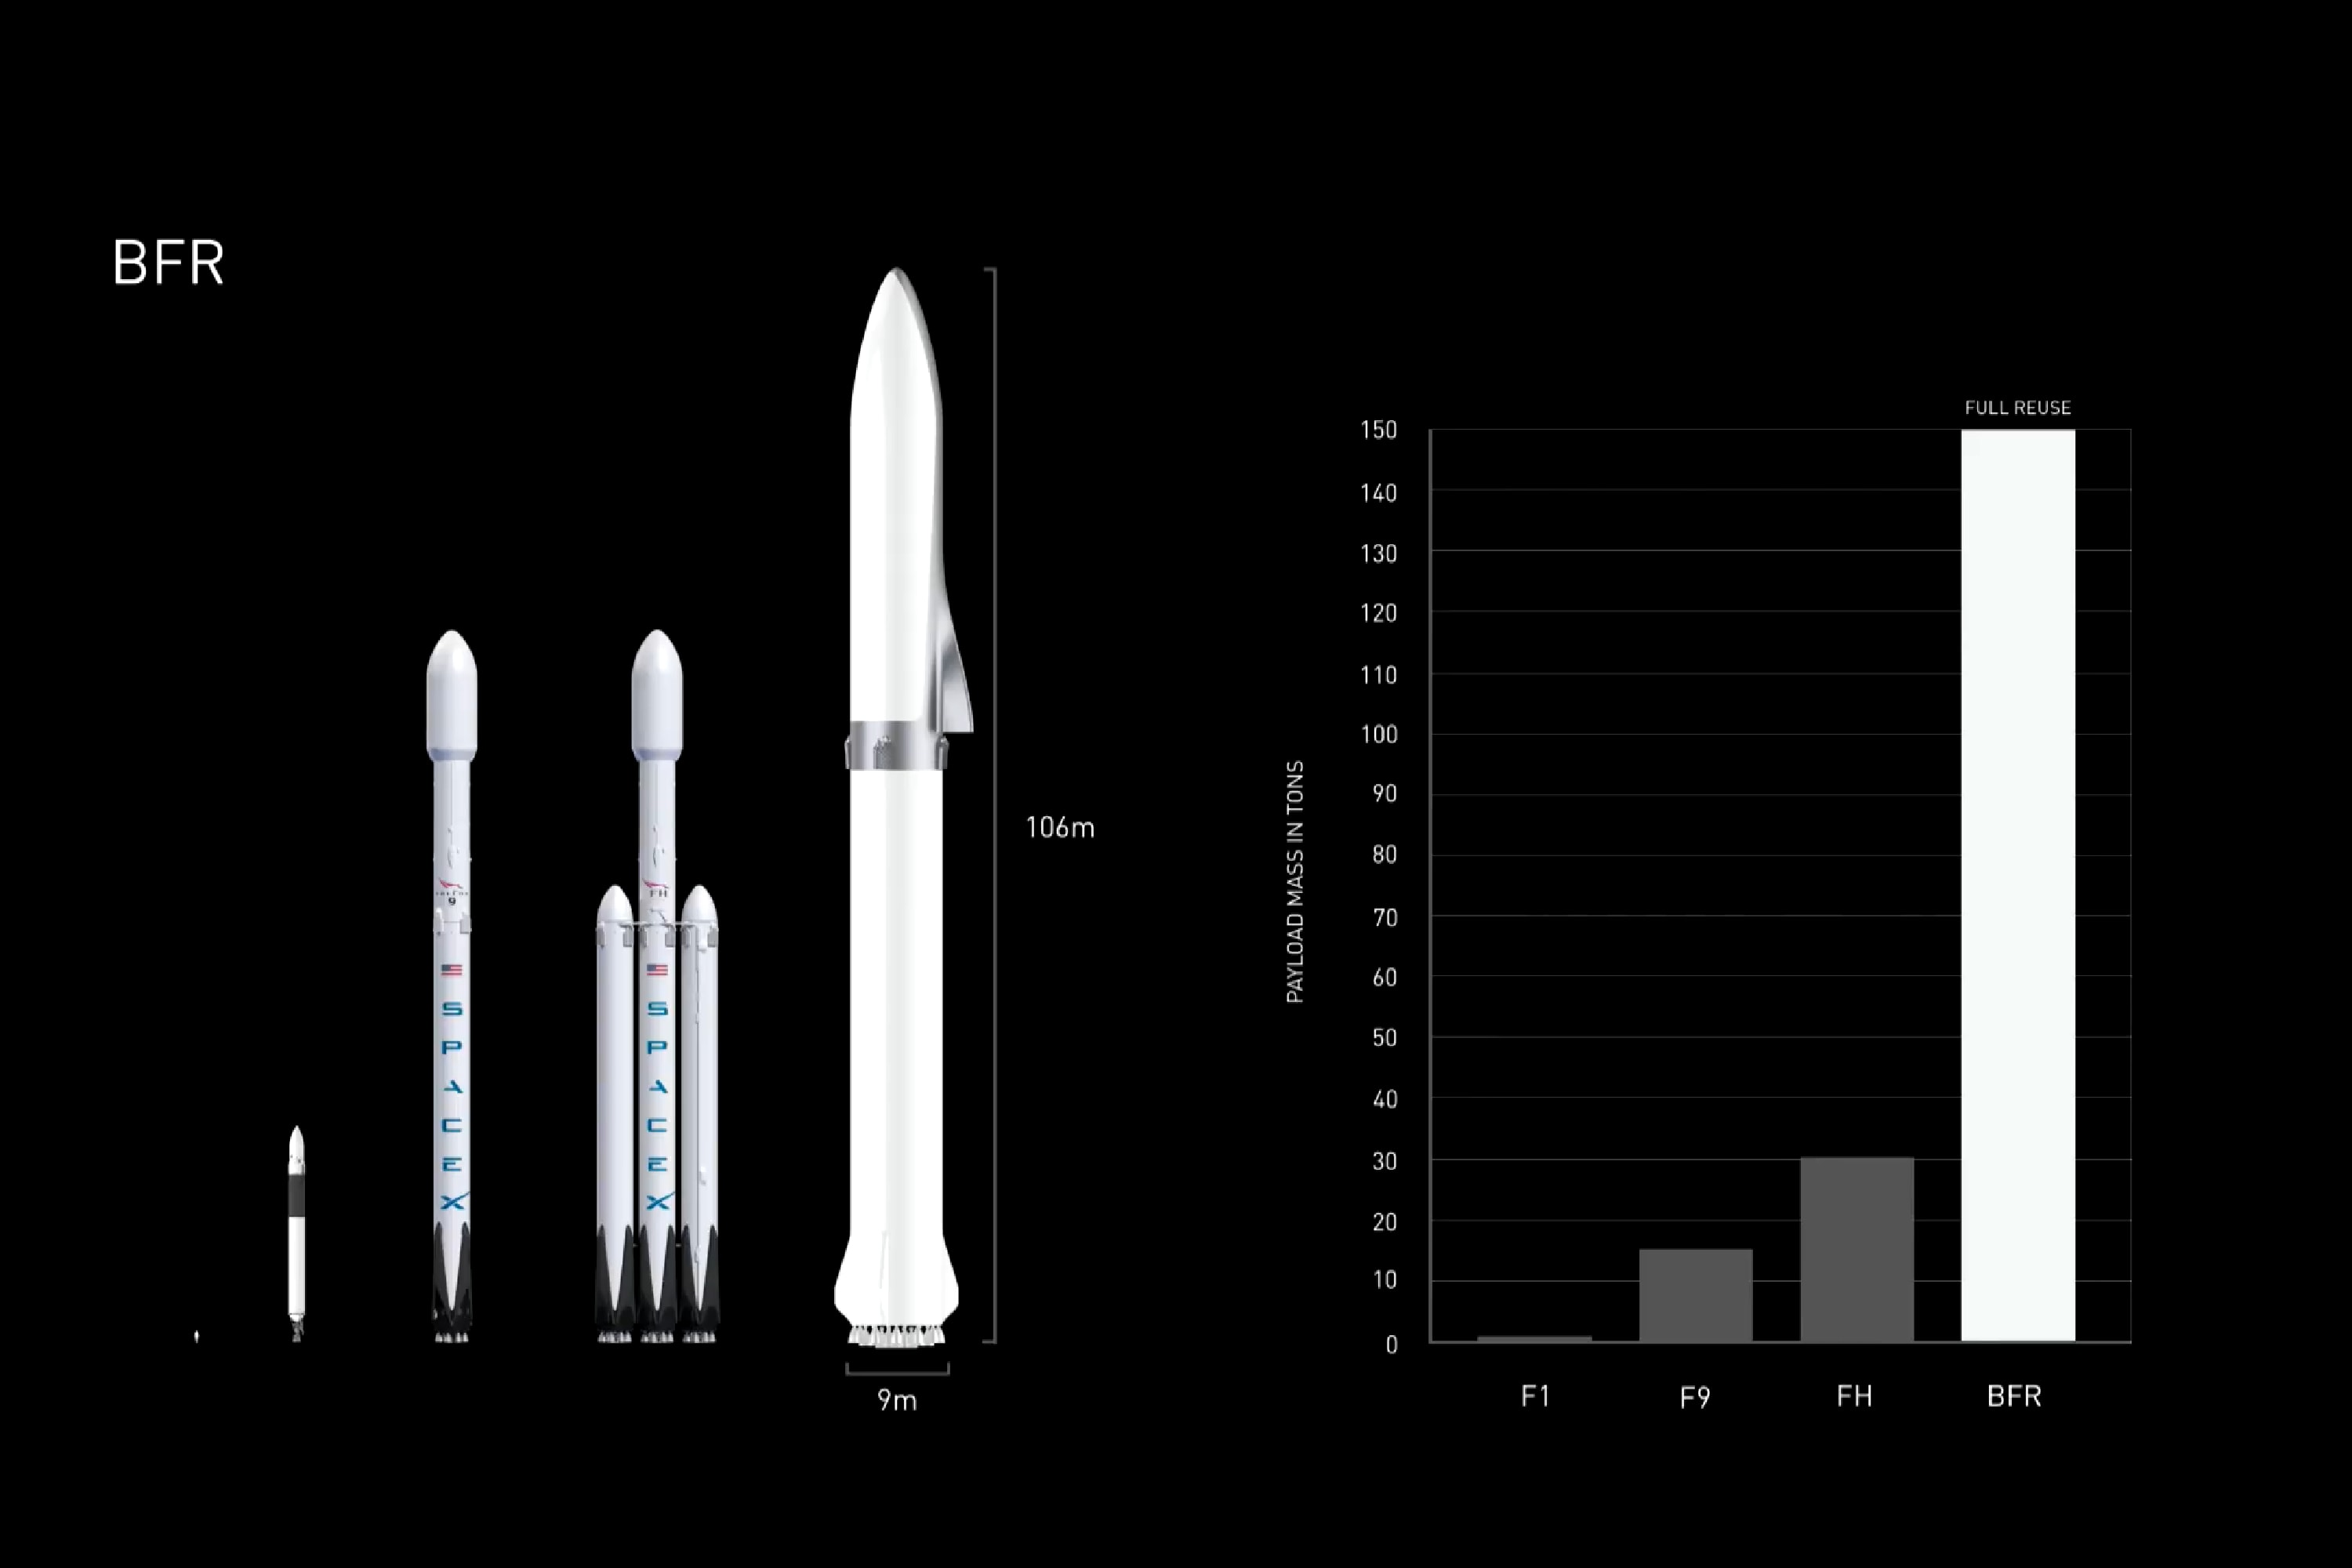 SpaceX CEO Elon Musk says that BFR could cost less to build than